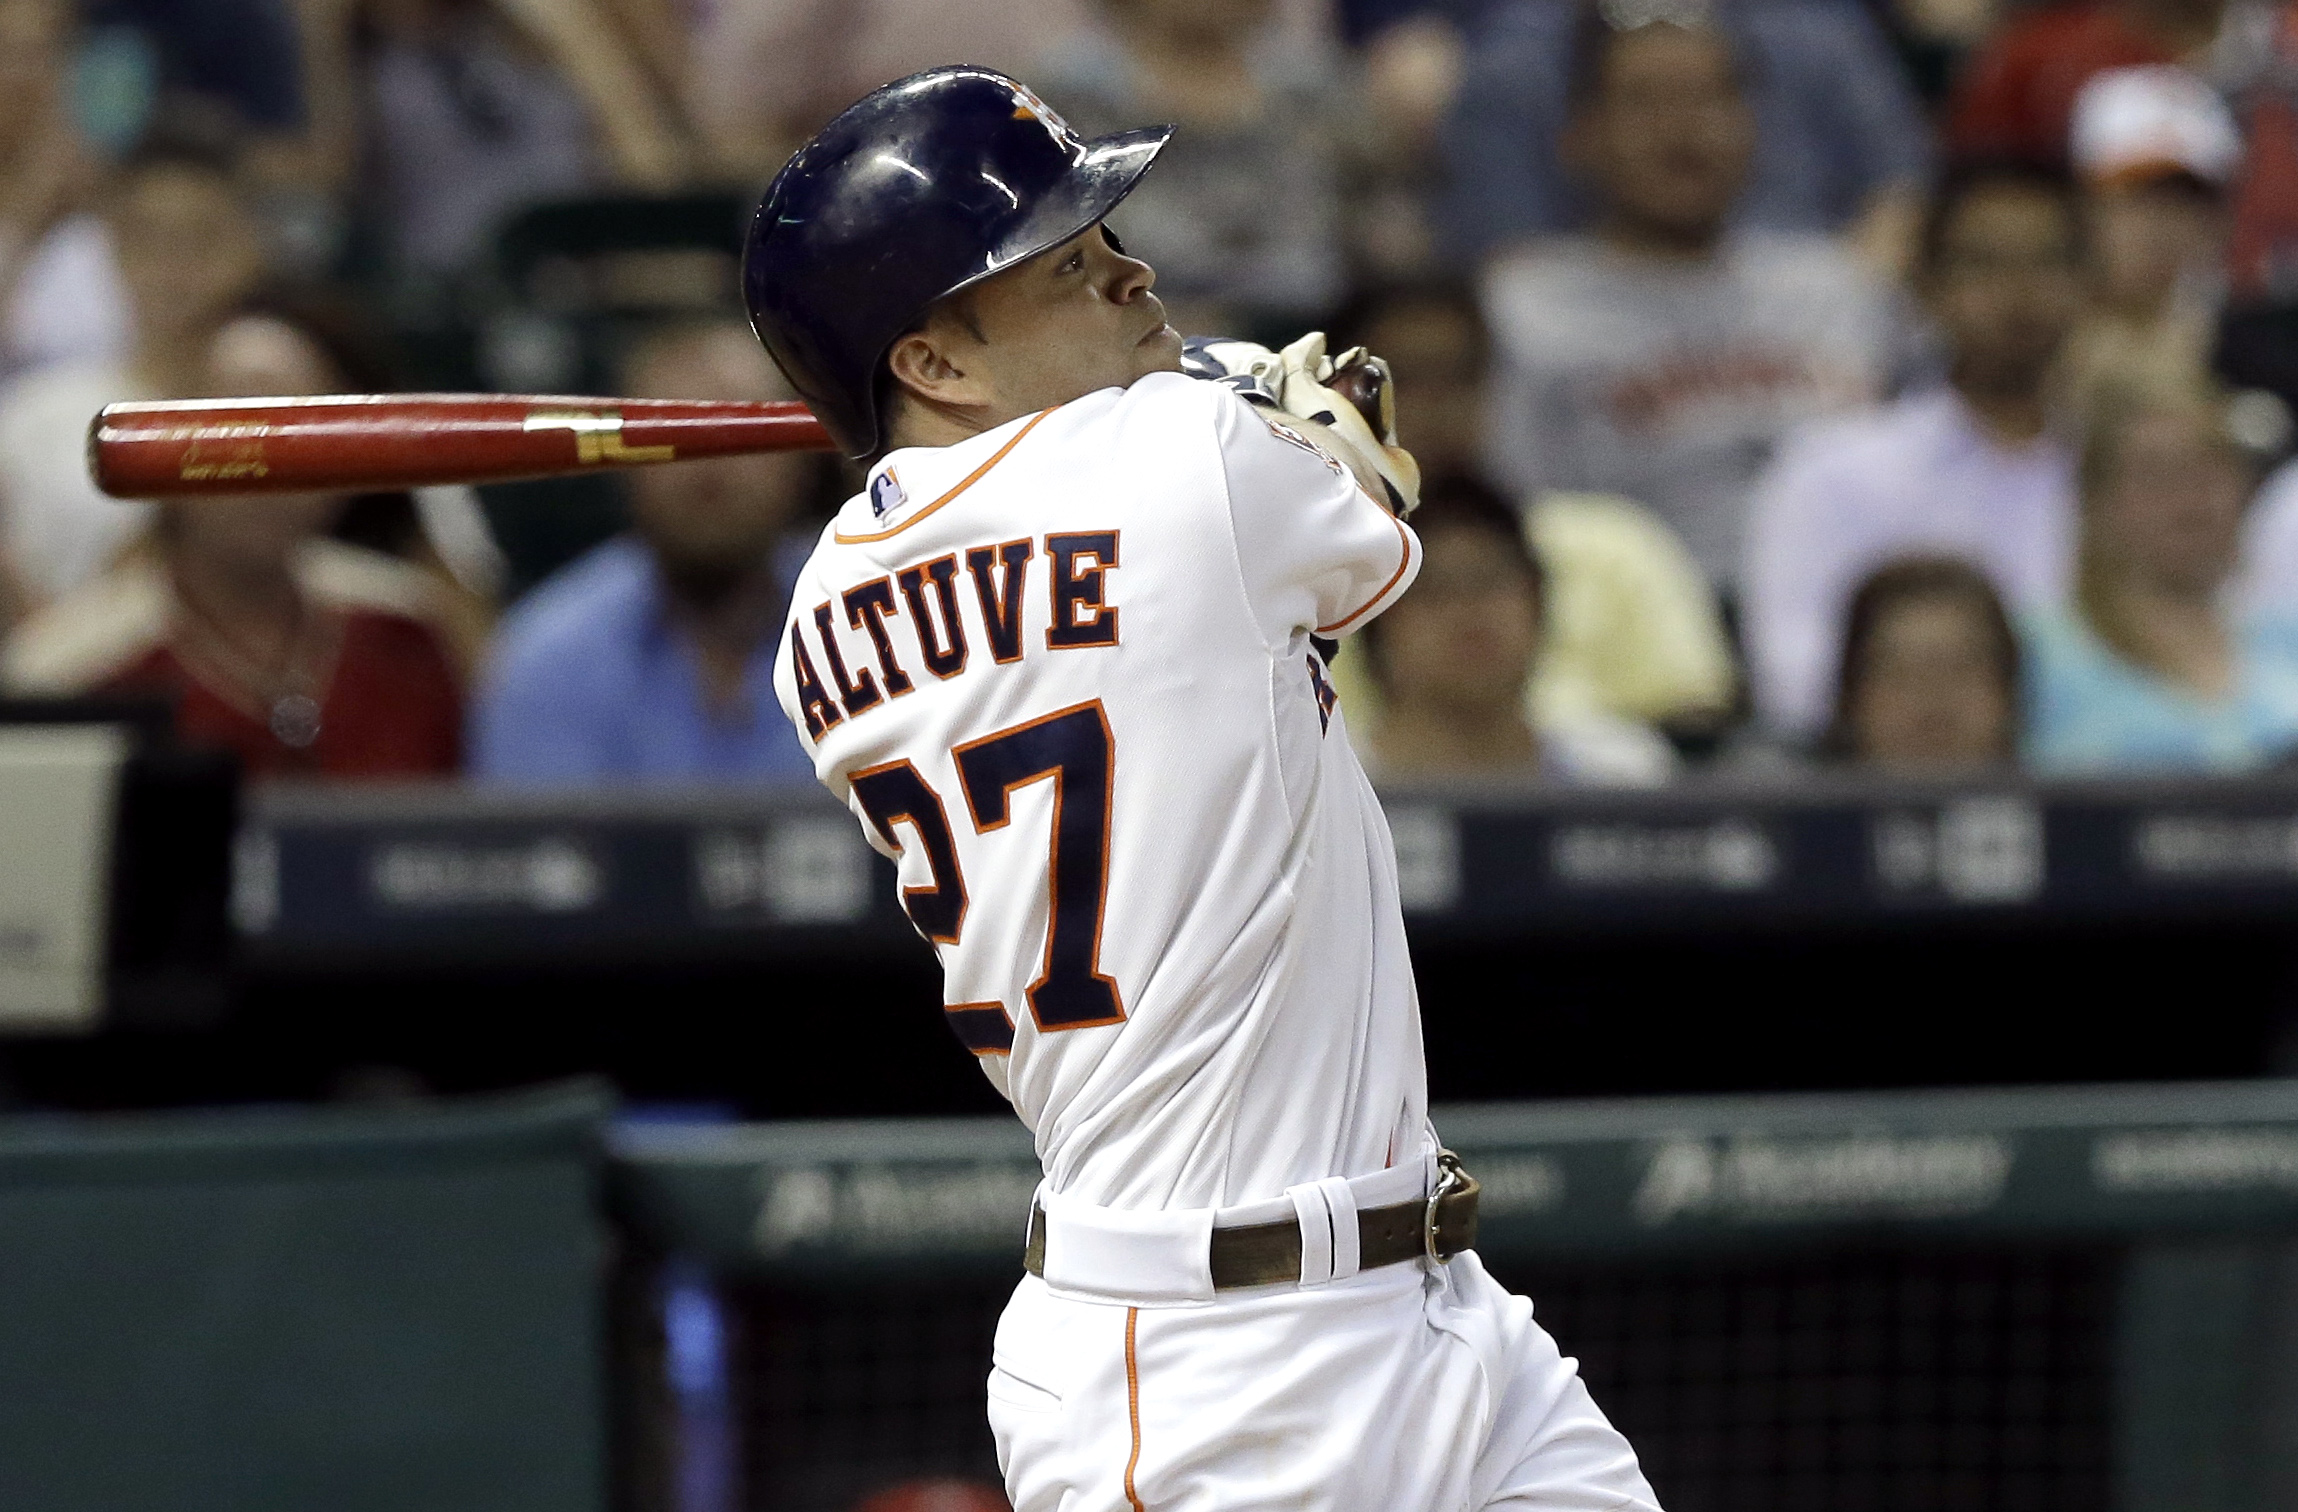 Houston Astros' Jose Altuve watches the ball go long to left field for a two-run double against the Los Angeles Angels in the sixth inning of a baseball game Tuesday, July 28, 2015, in Houston. (AP Photo/Pat Sullivan)